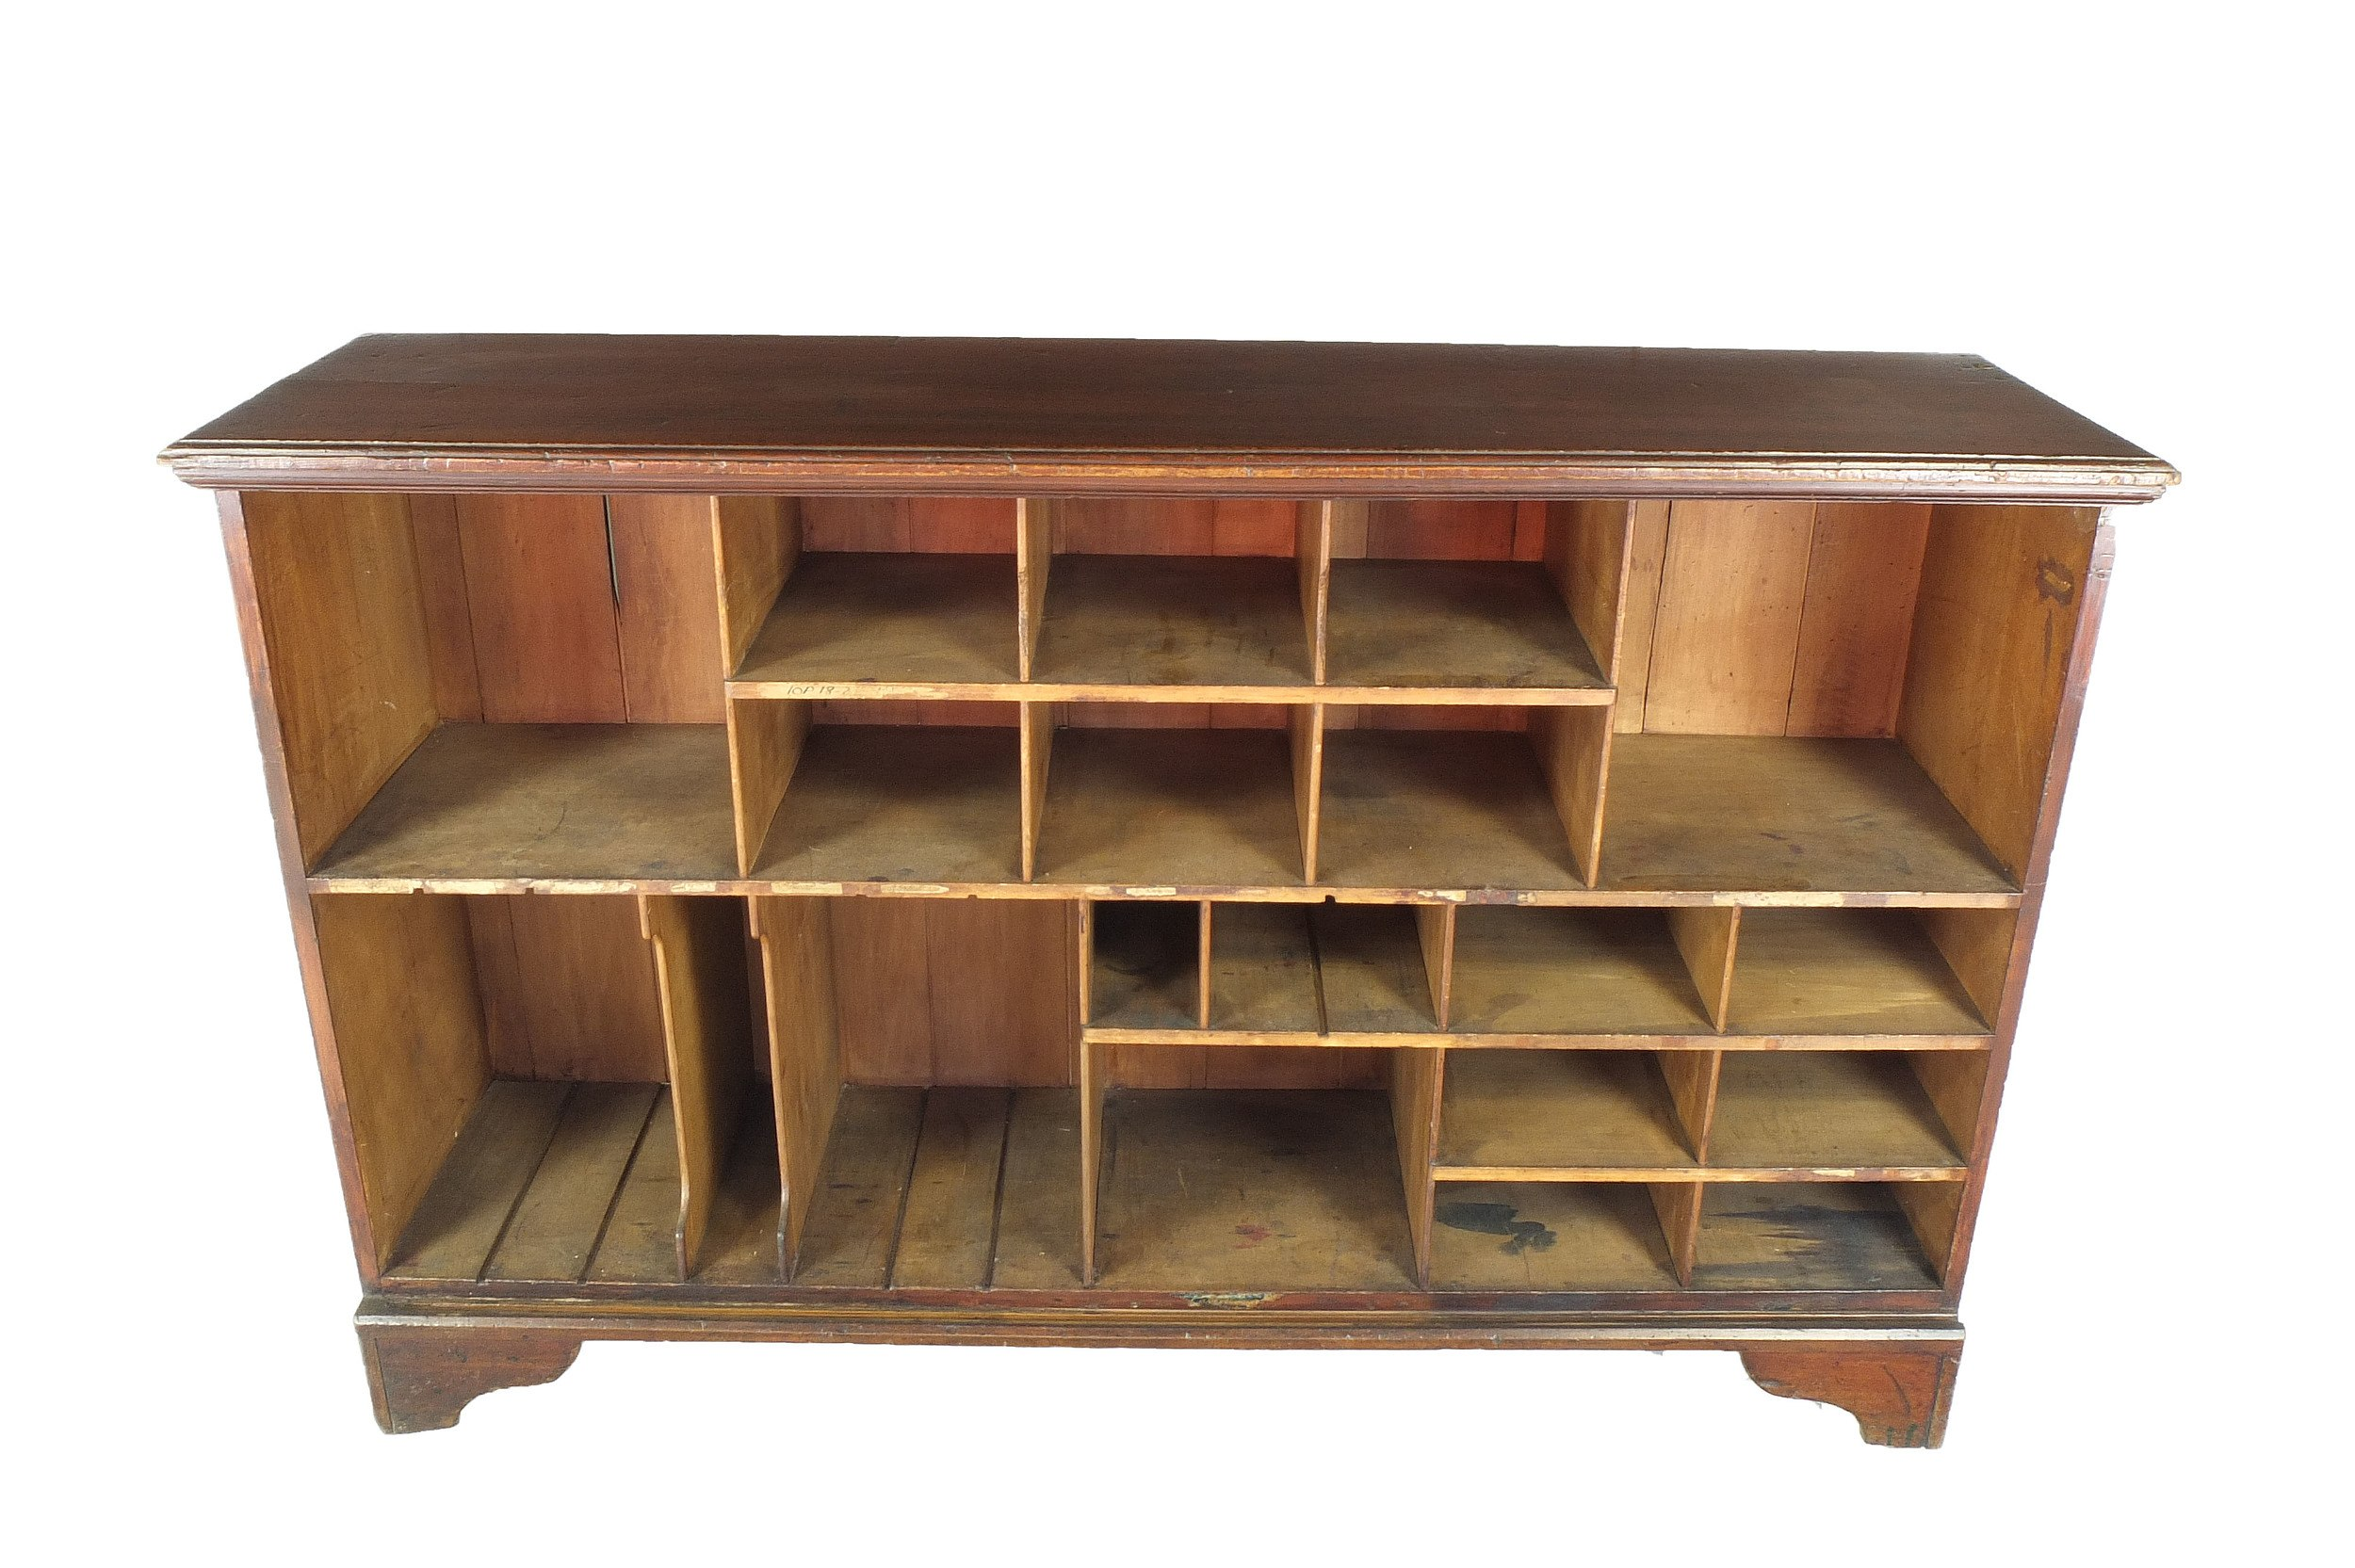 'Antique Australian Kauri Pine Post Office Pigeonhole Cabinet'